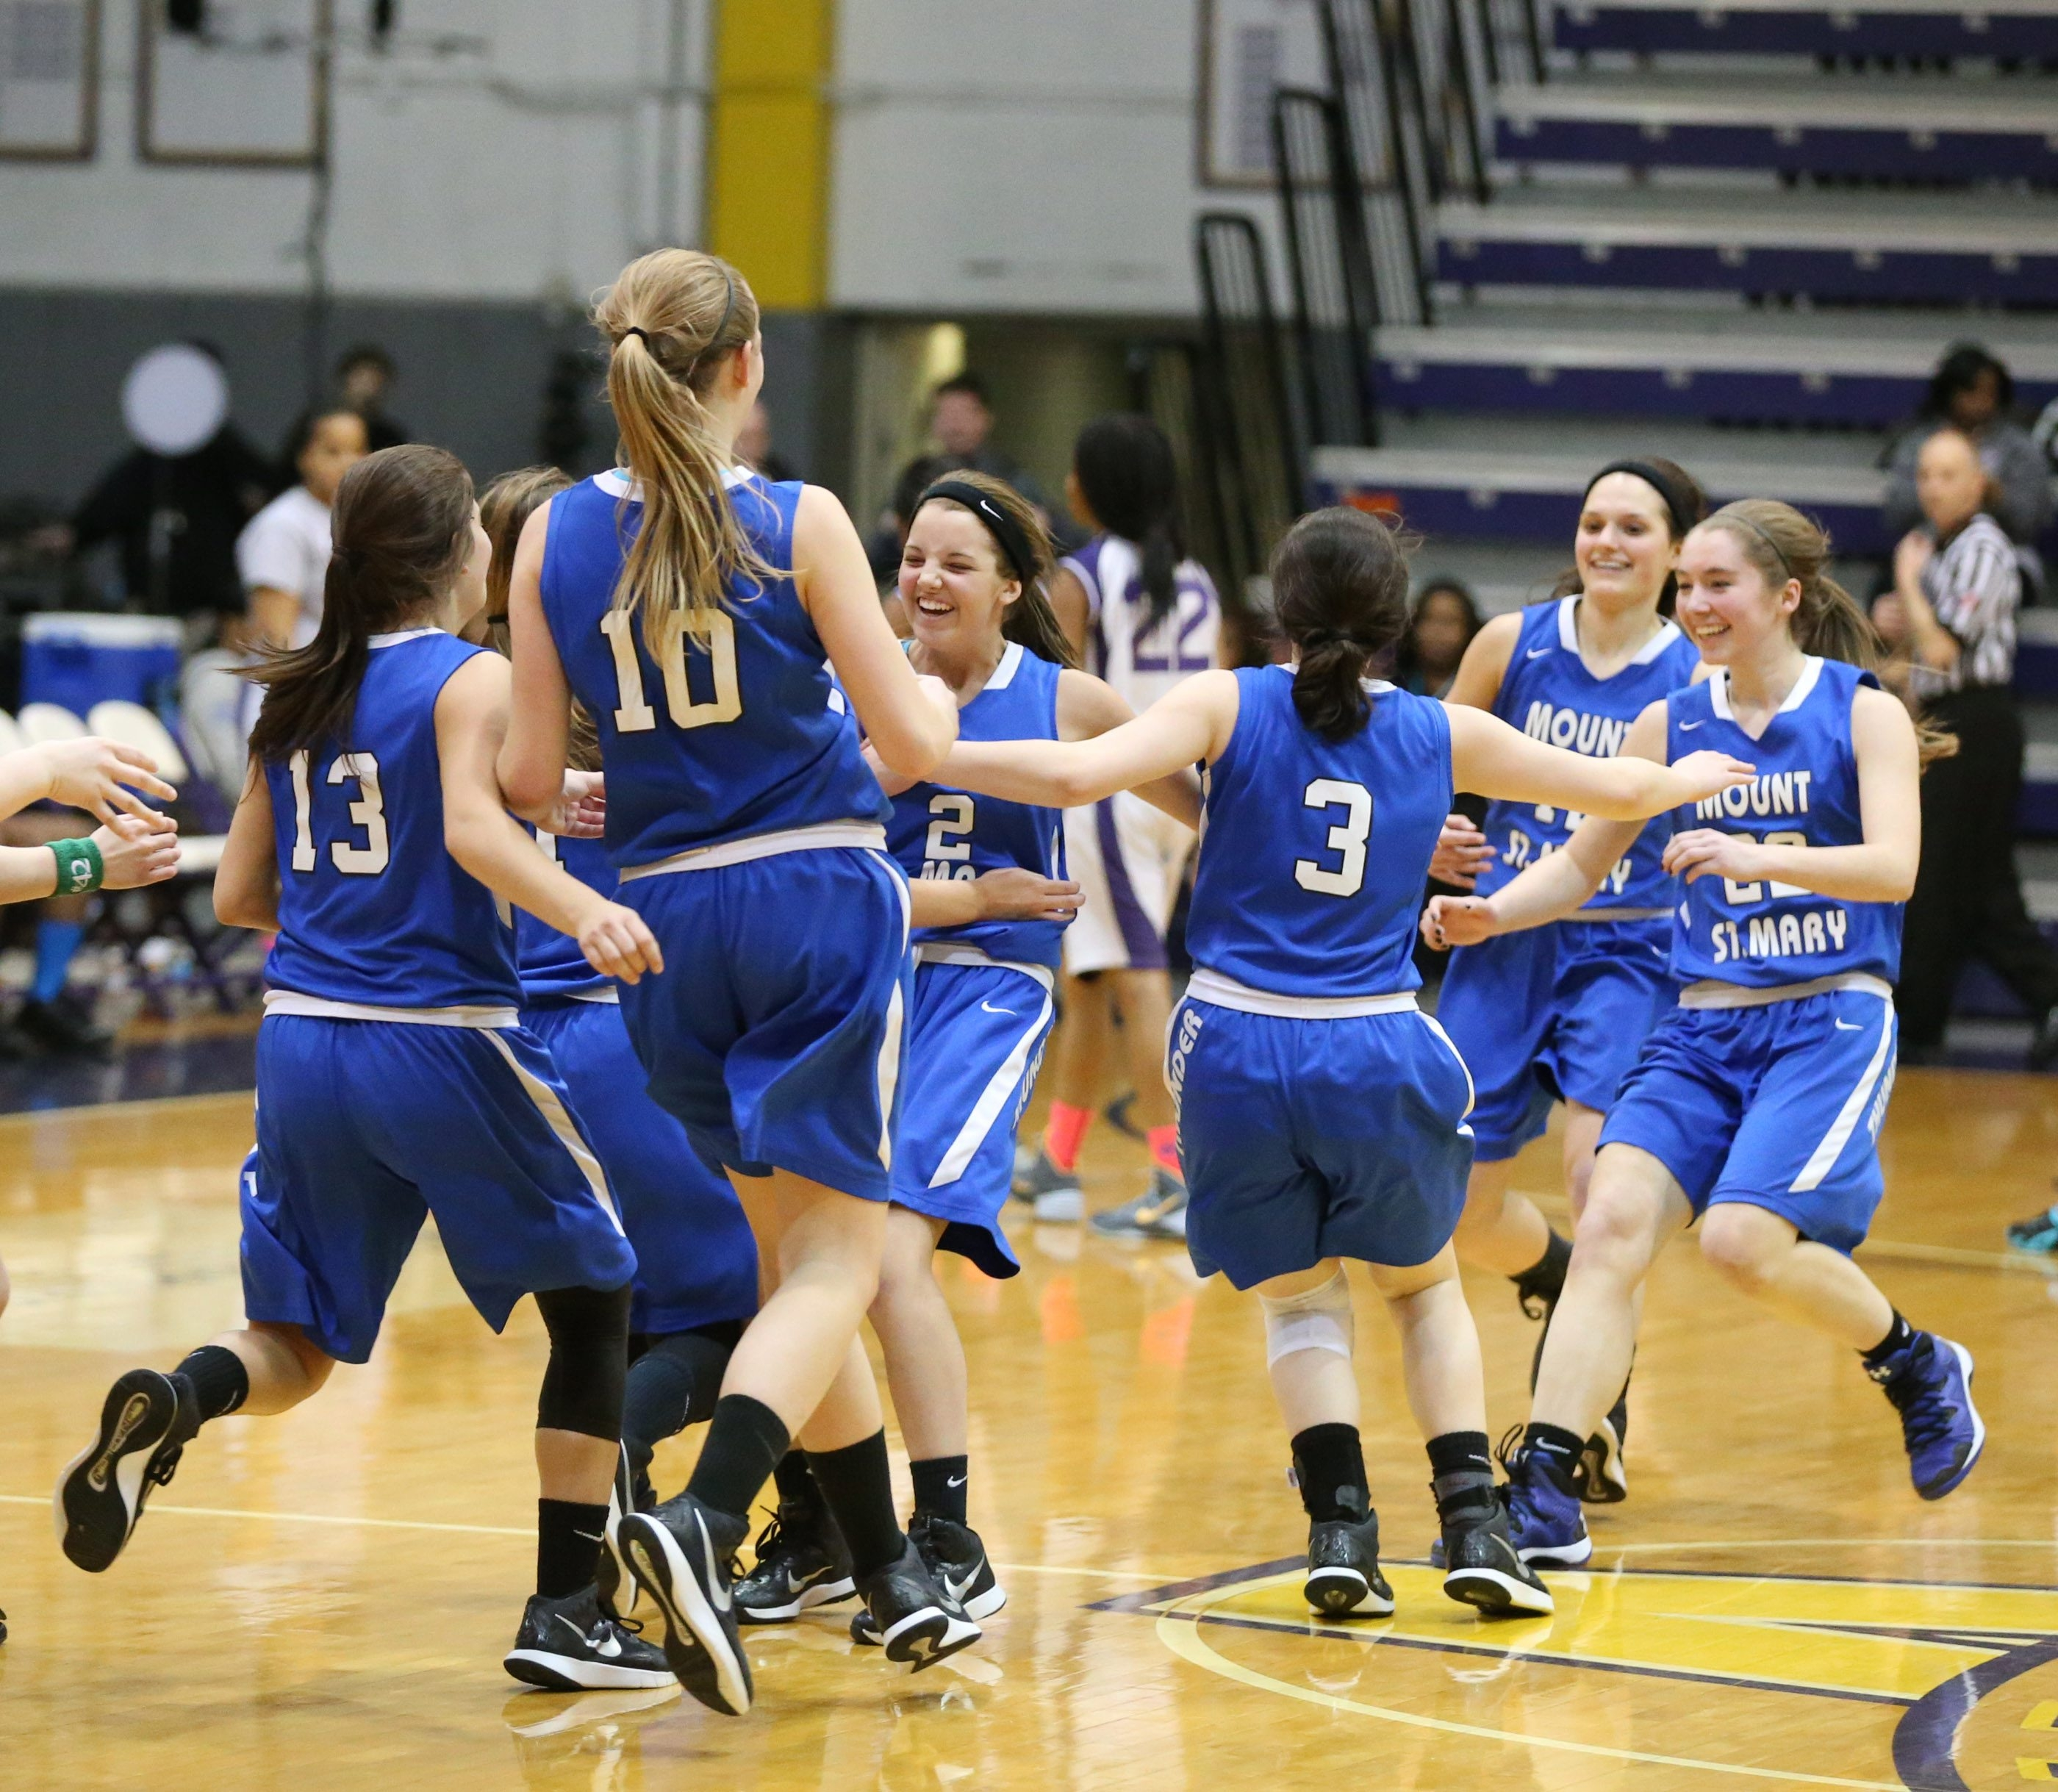 Mount St. Mary celebrates after beating Brooklyn College to advance to the finals in the NYS Federation Tournament of Champions.